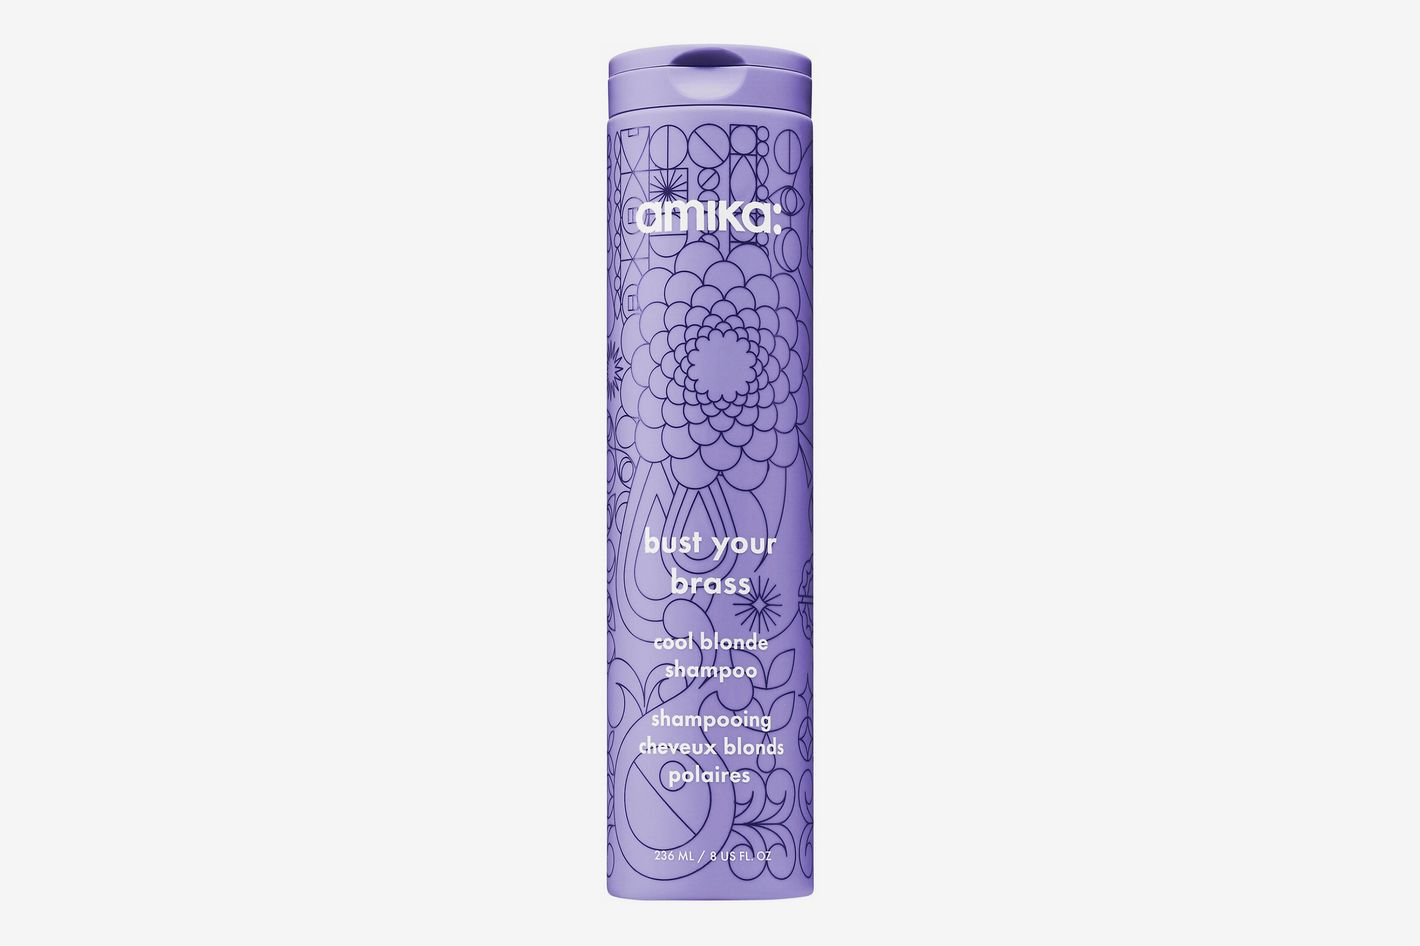 Amika Bust Your Brass Cool Blonde Shampoo